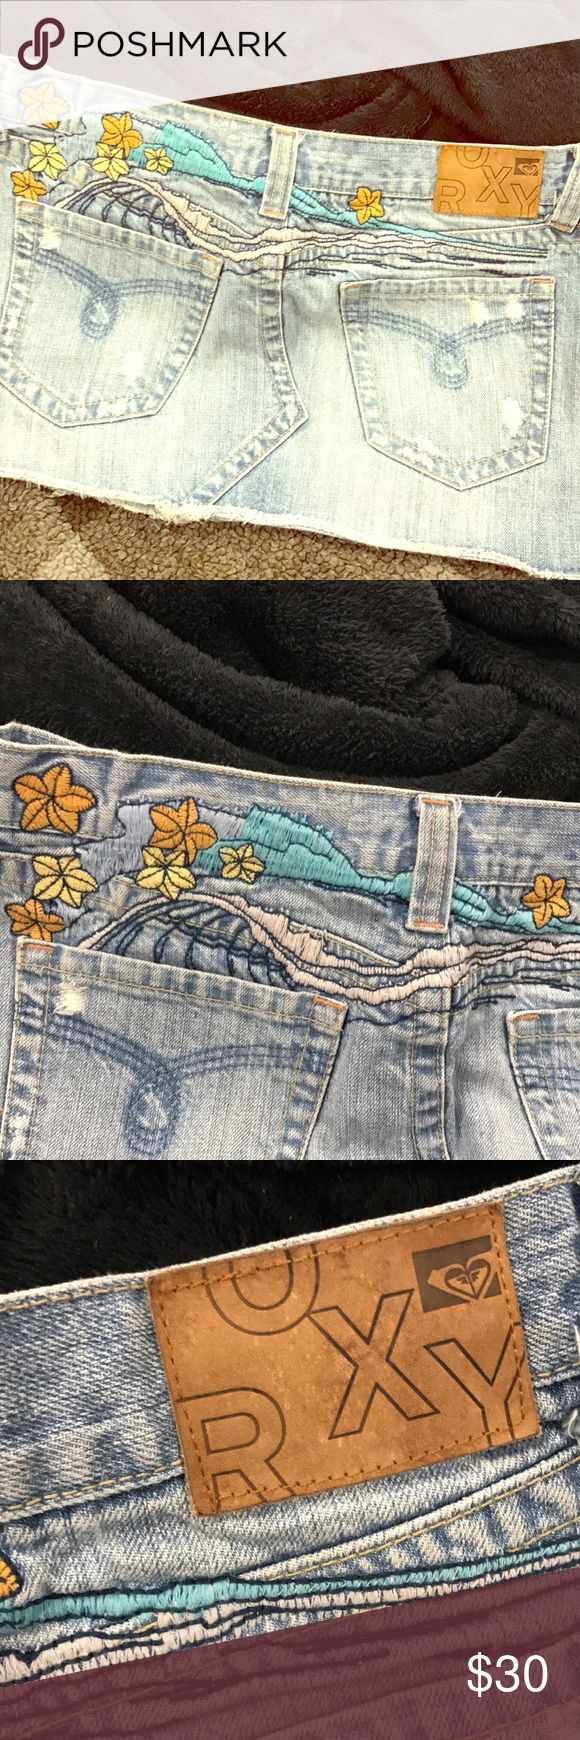 Roxy embroidered jean skirt Beach themed! Super cute! Distressed Jean skirt. Worn a few times, lots of life left! No visible wear! Roxy Skirts Mini